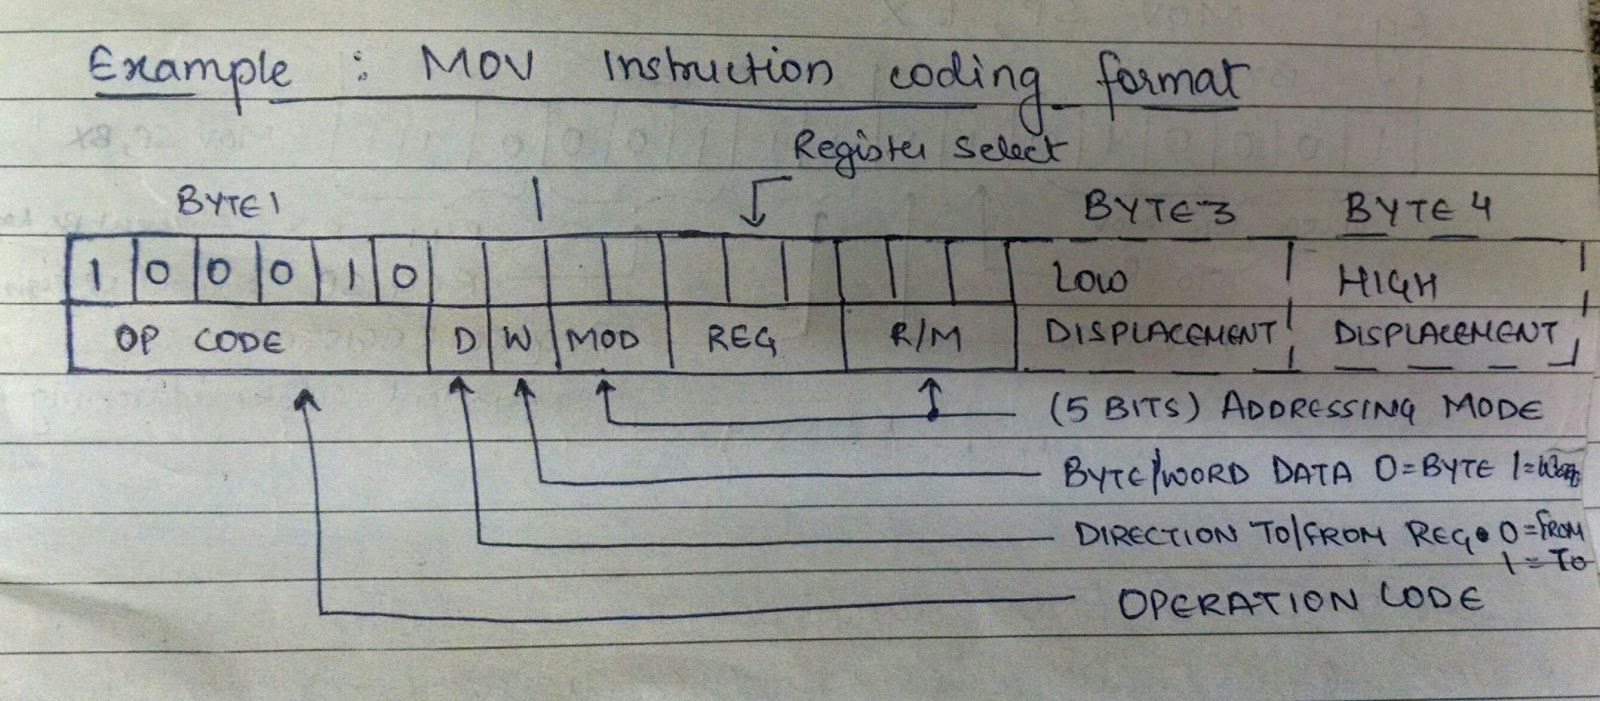 MOV Instruction Coding Format